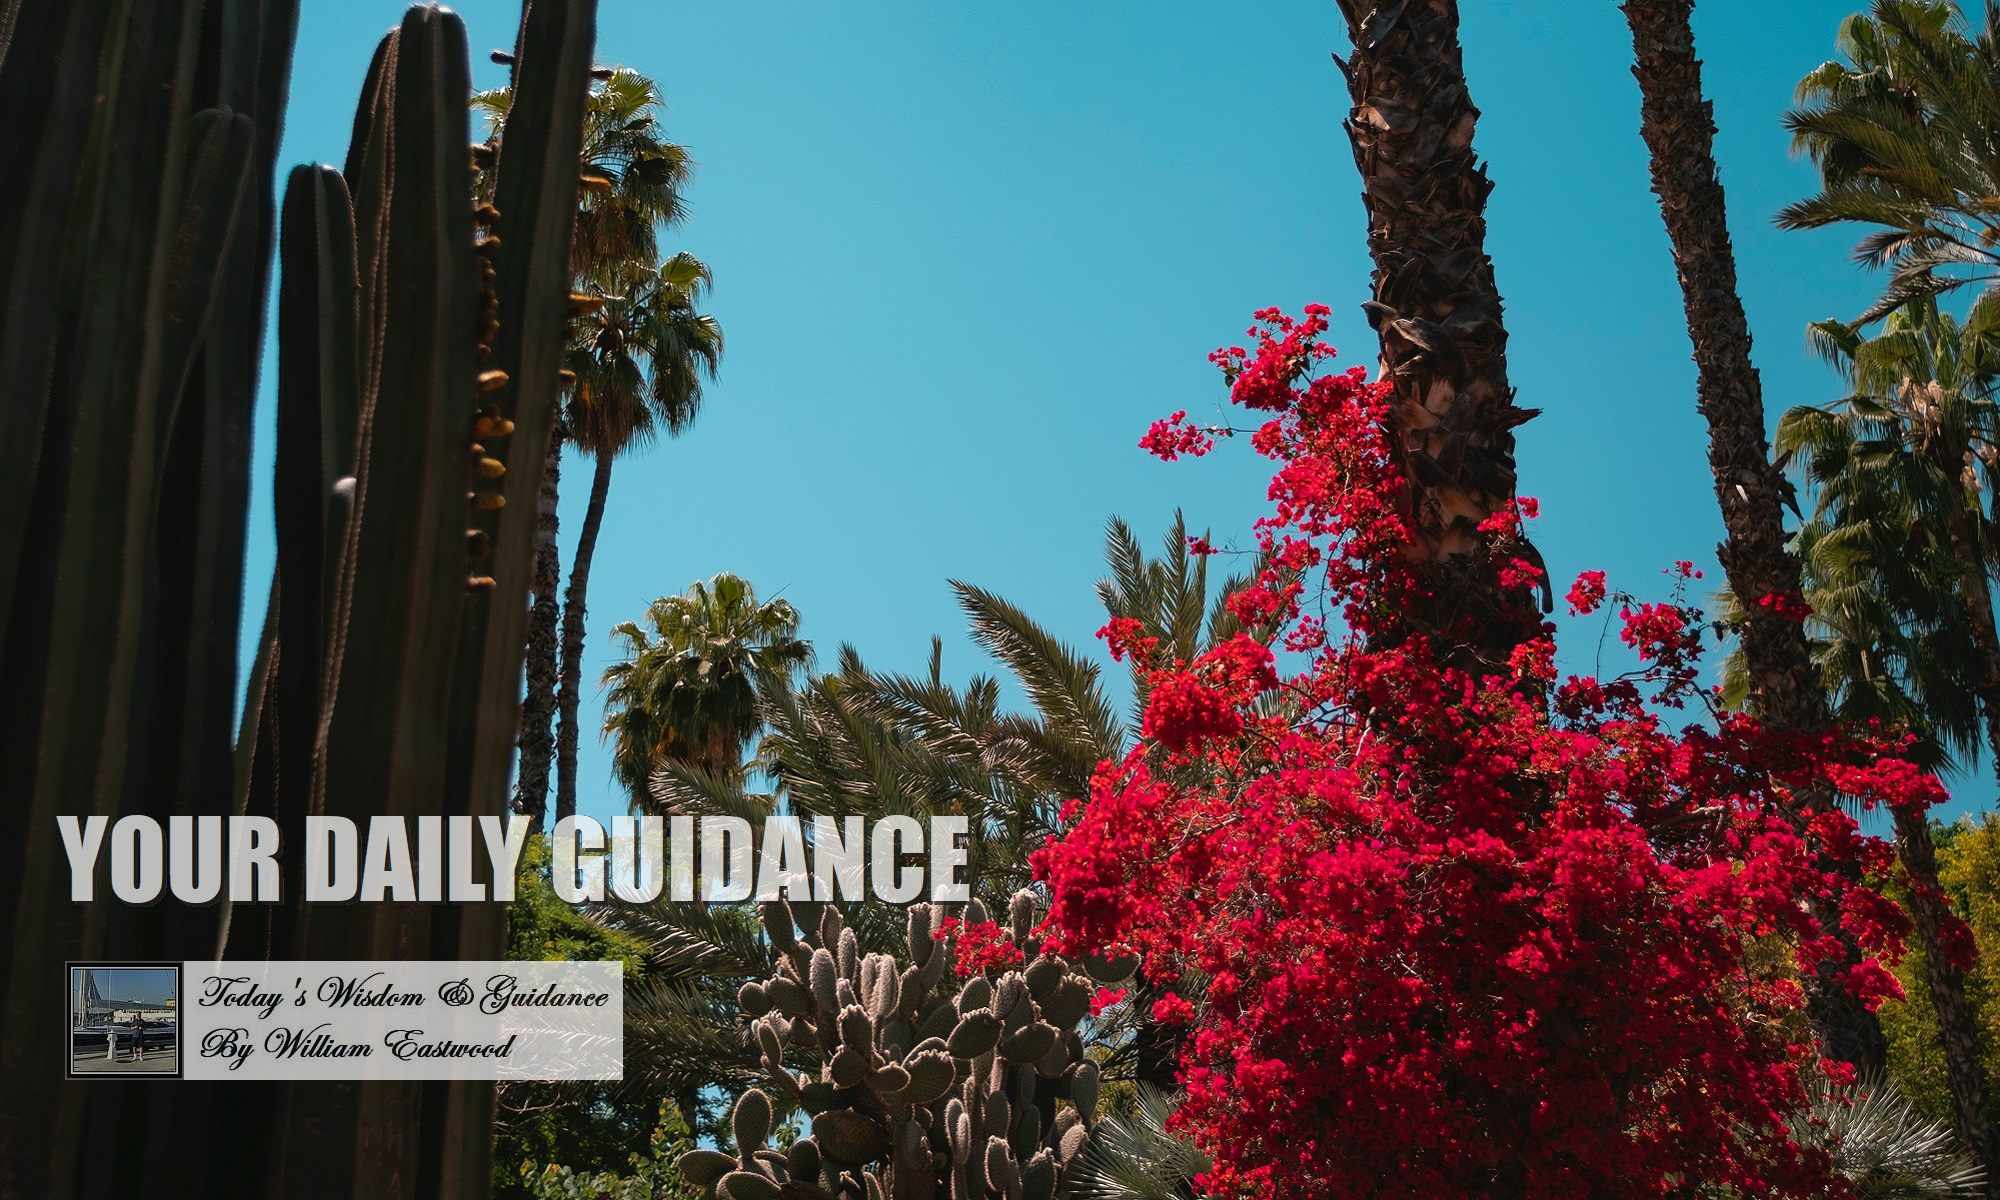 Daily-guidance-feature-image-3e-2000